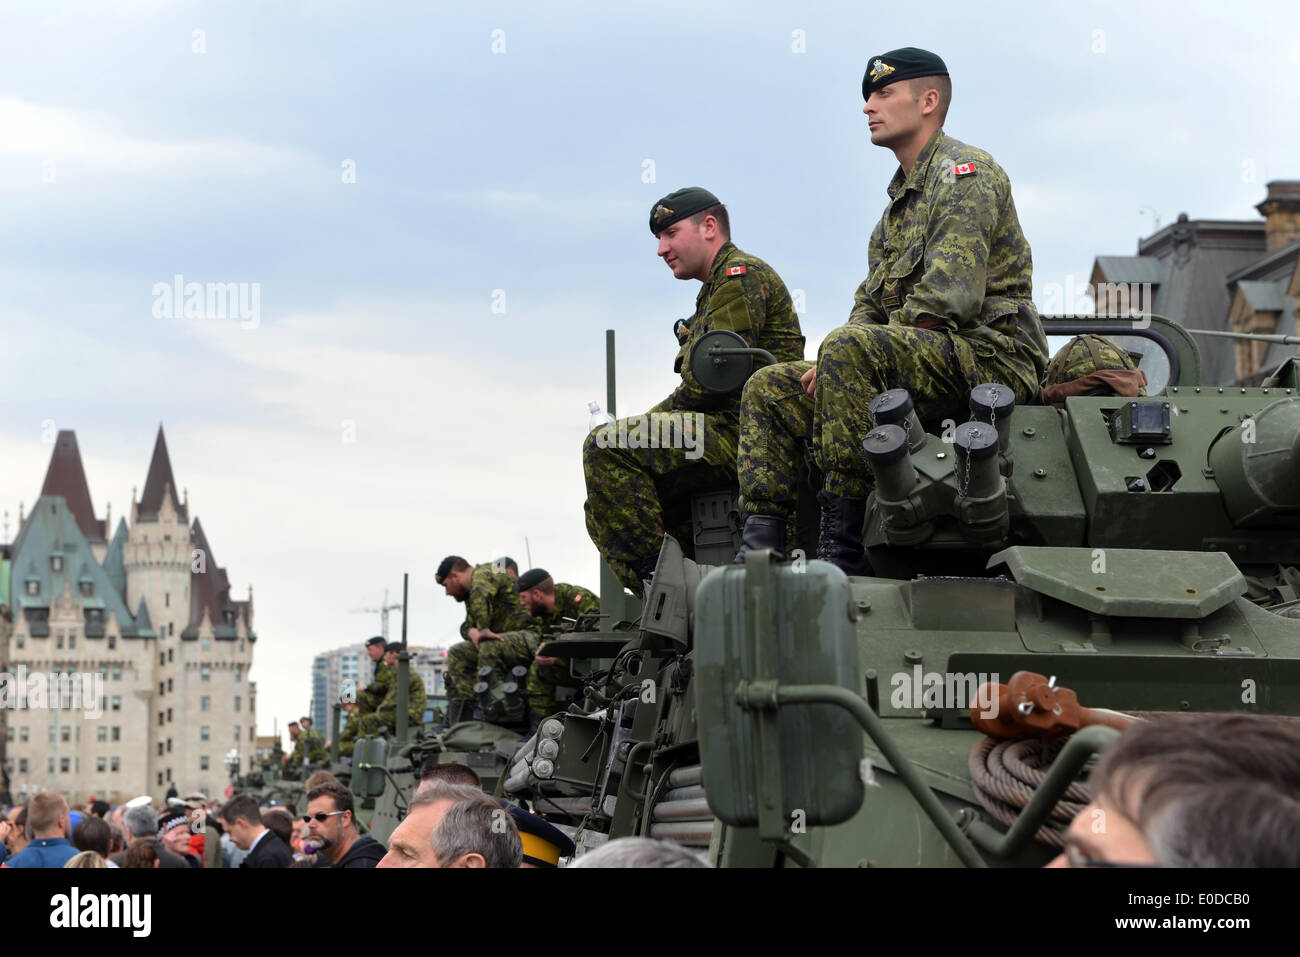 Soldiers who served in the Canadian Forces in Afghanistan are honored on Parliament Hill during national Day of Honour May 9, 2014 in Ottawa, Canada - Stock Image